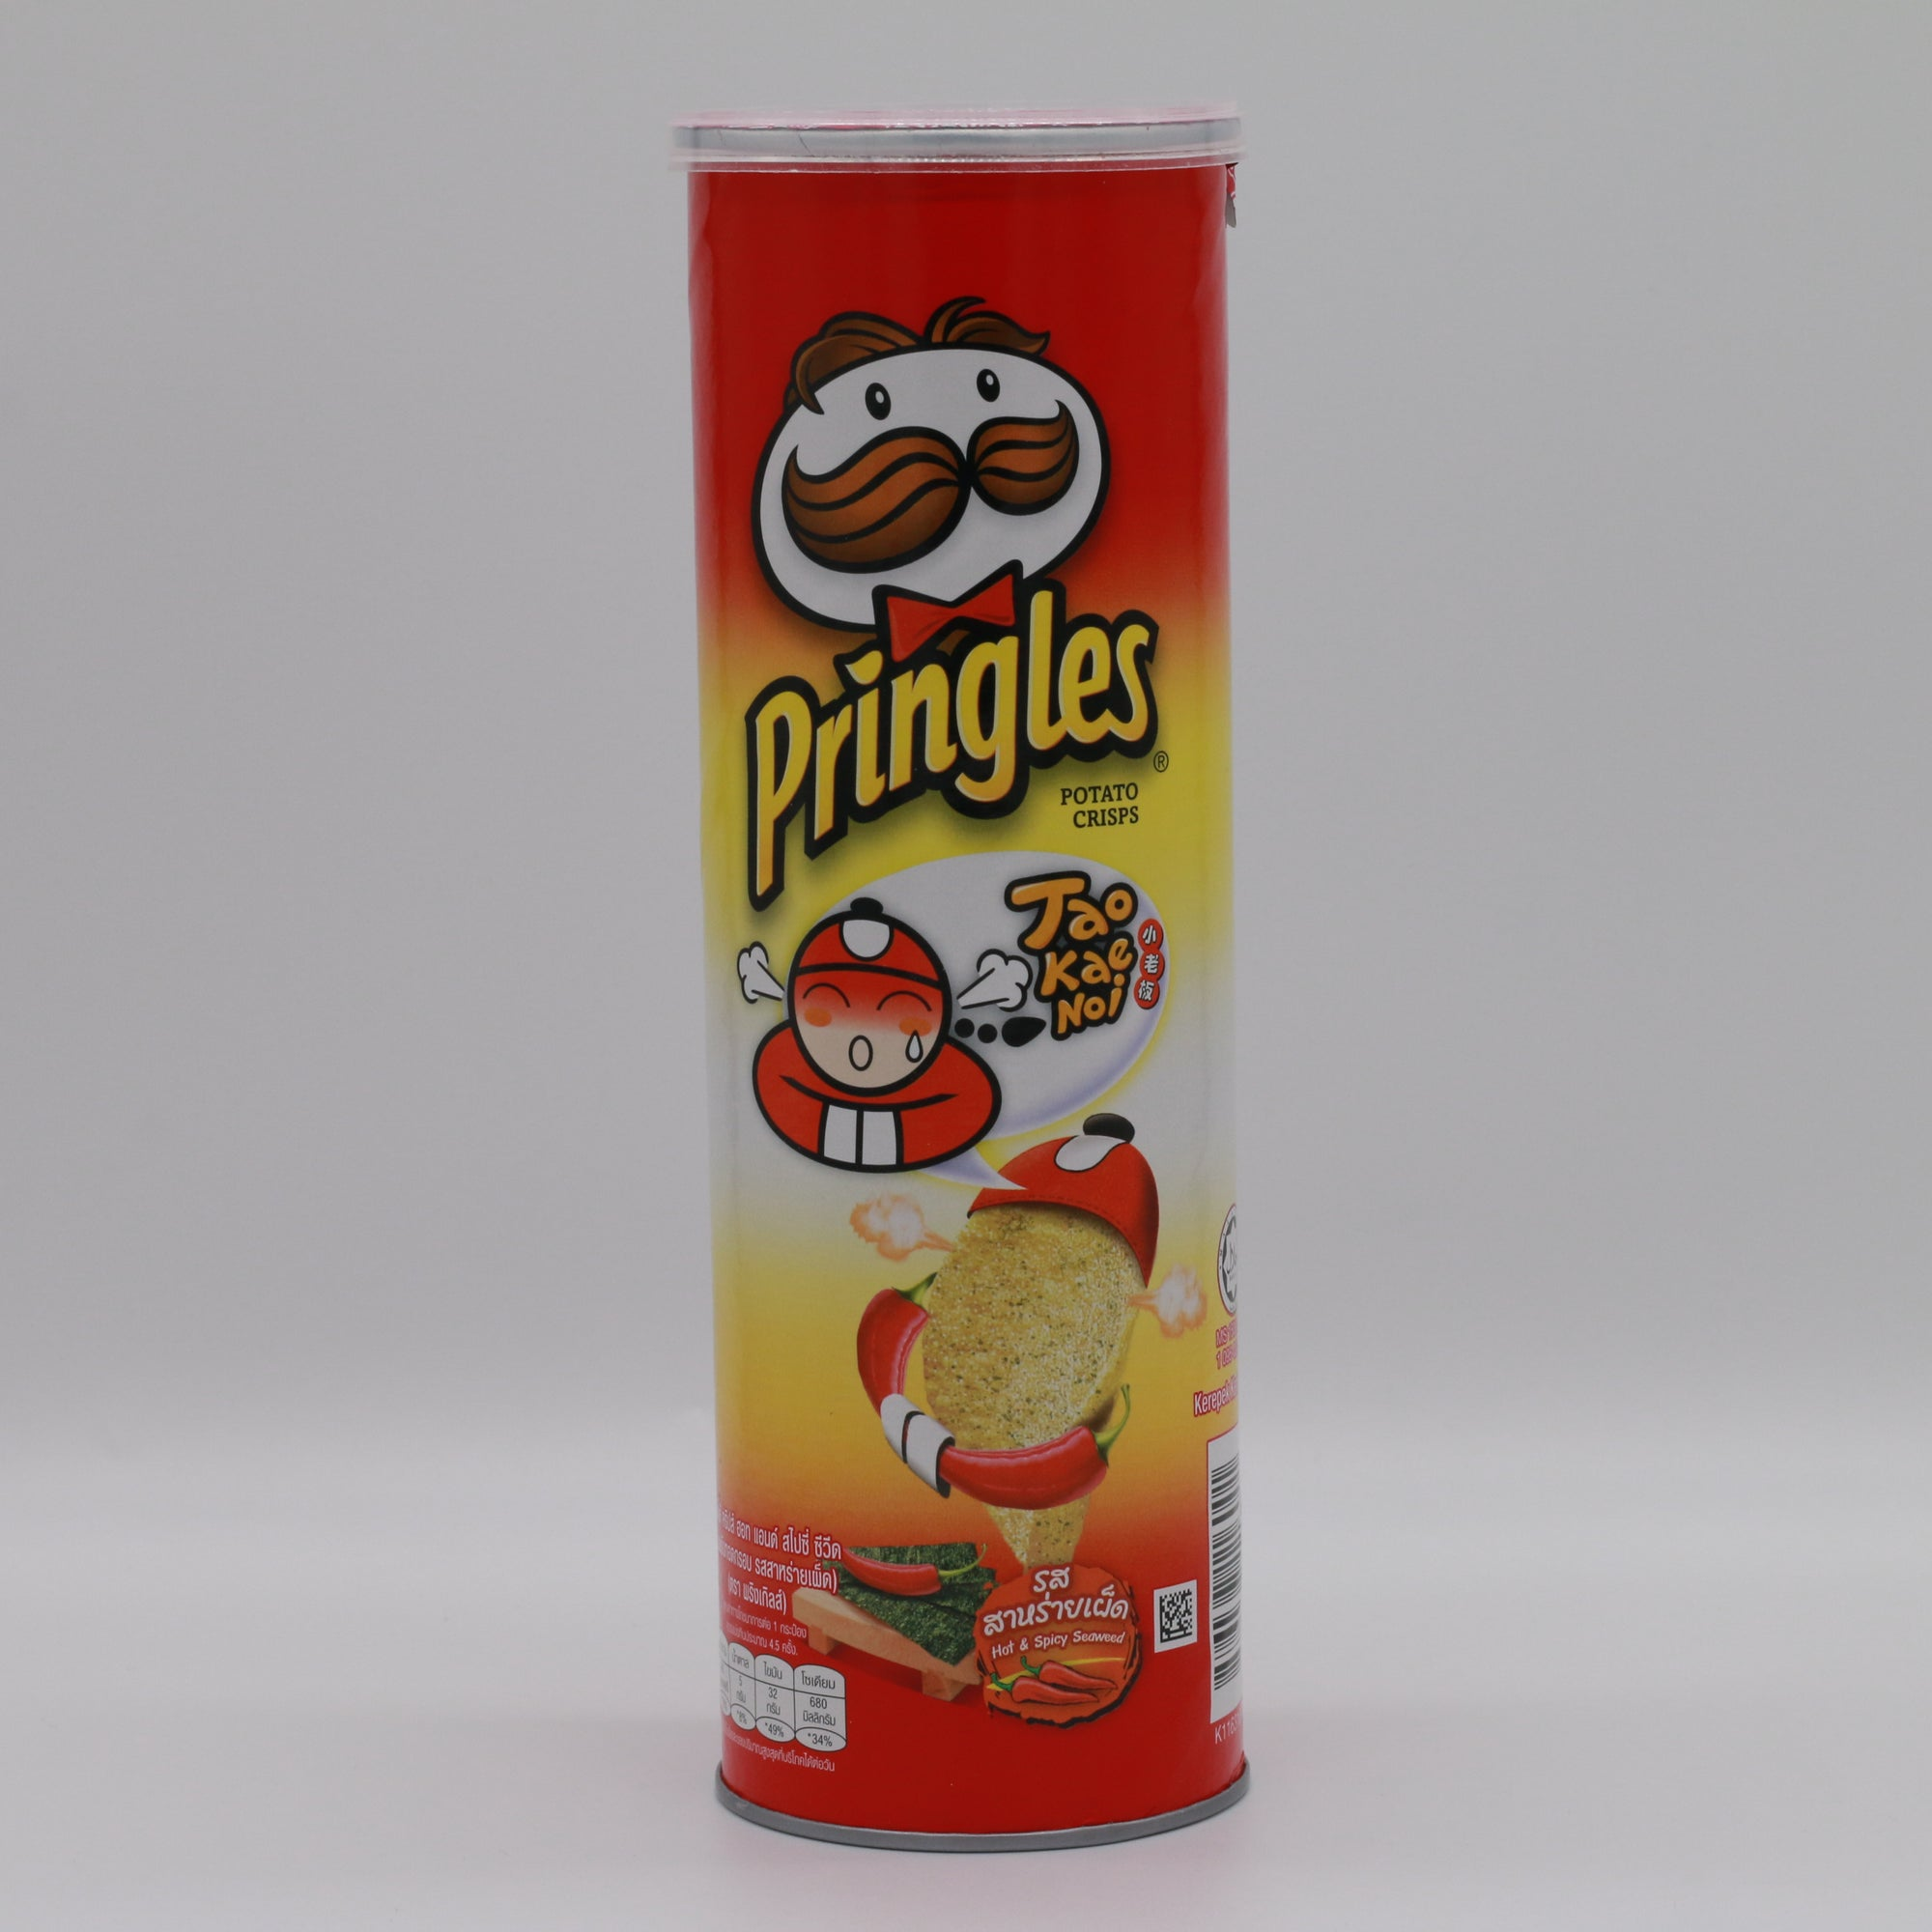 Hot & Spicy Seaweed Pringles